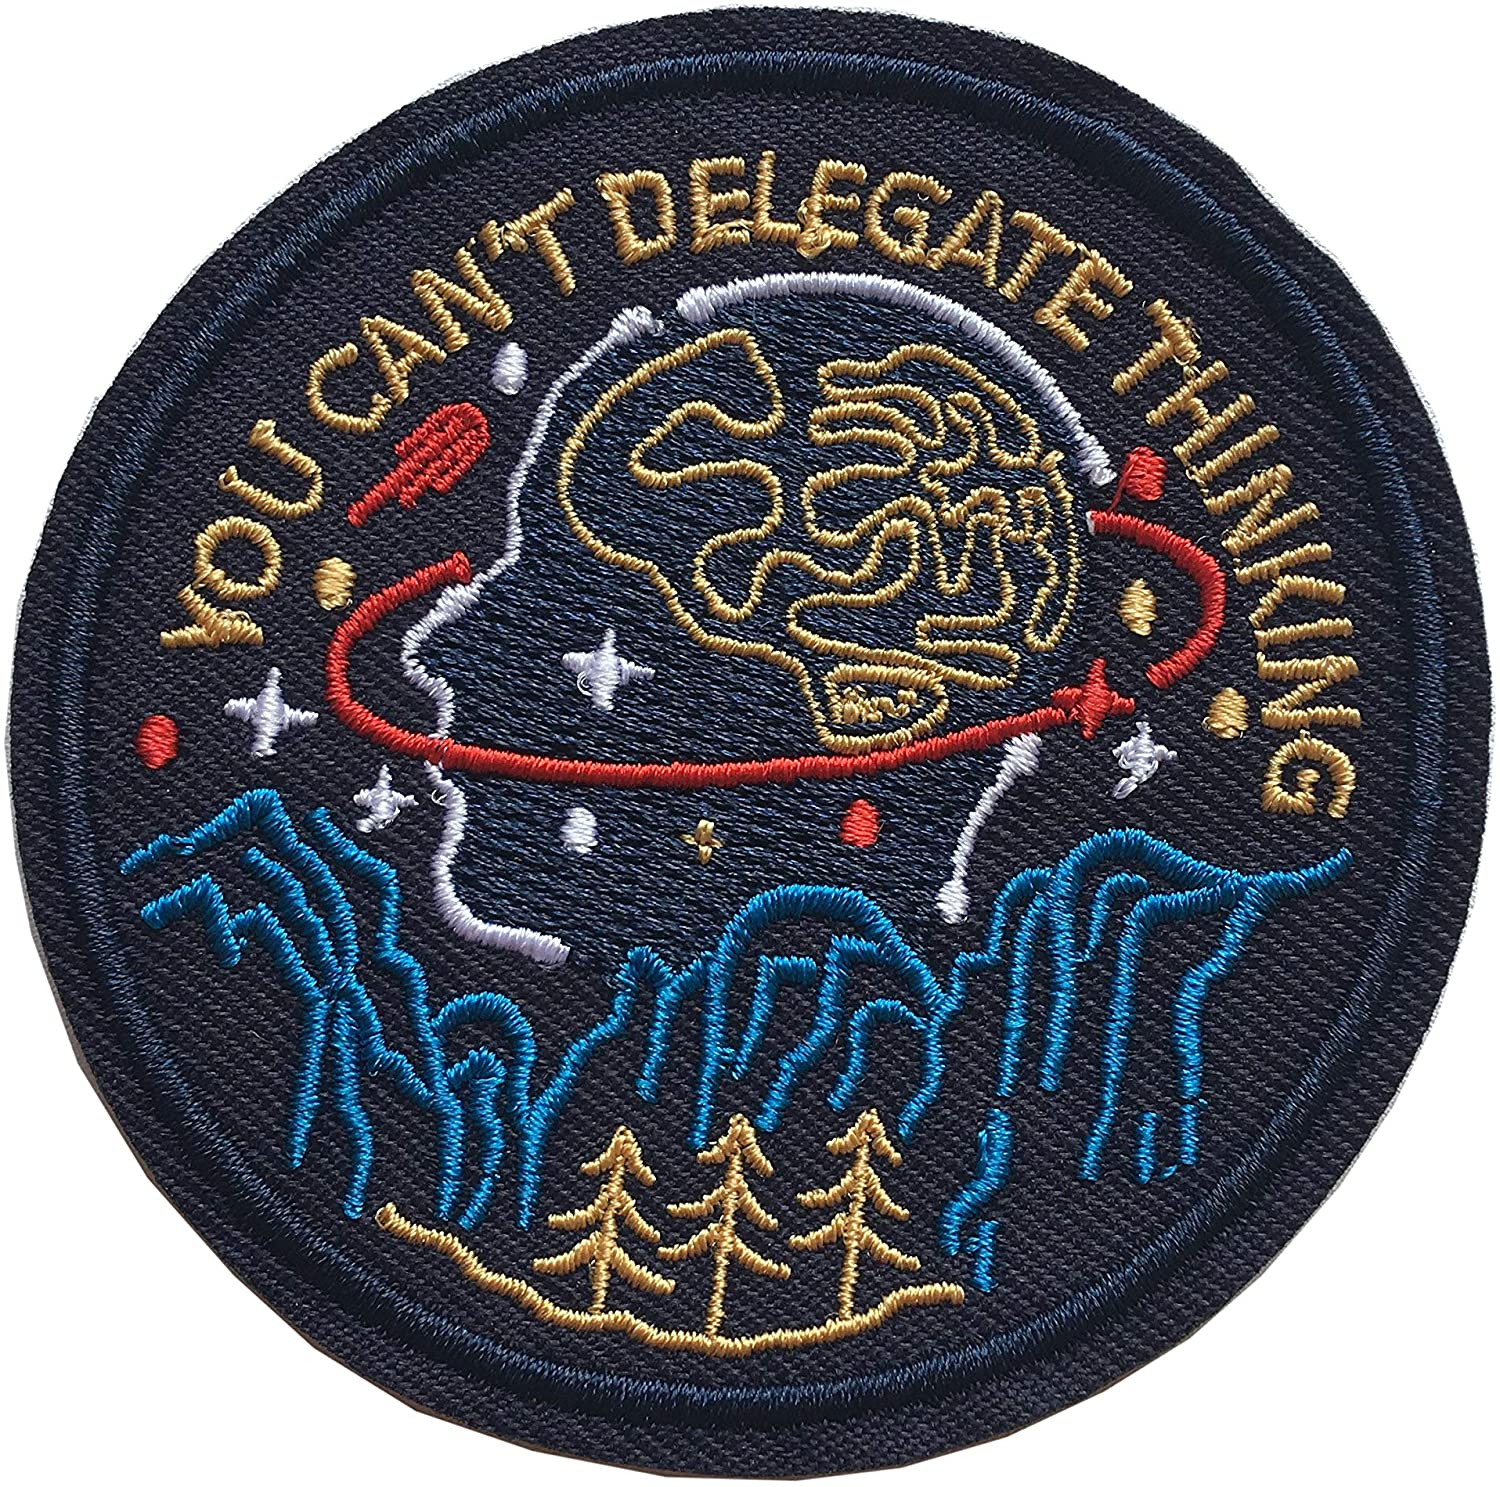 Traveler Iron On Patches - Perfect for Backpacks and Clothing - for Your Type of Fun Adventure, Outdoor, Hiking, Travel Embroidered Sew or Iron-on Patch (B-You Can't Delegate Thinking)